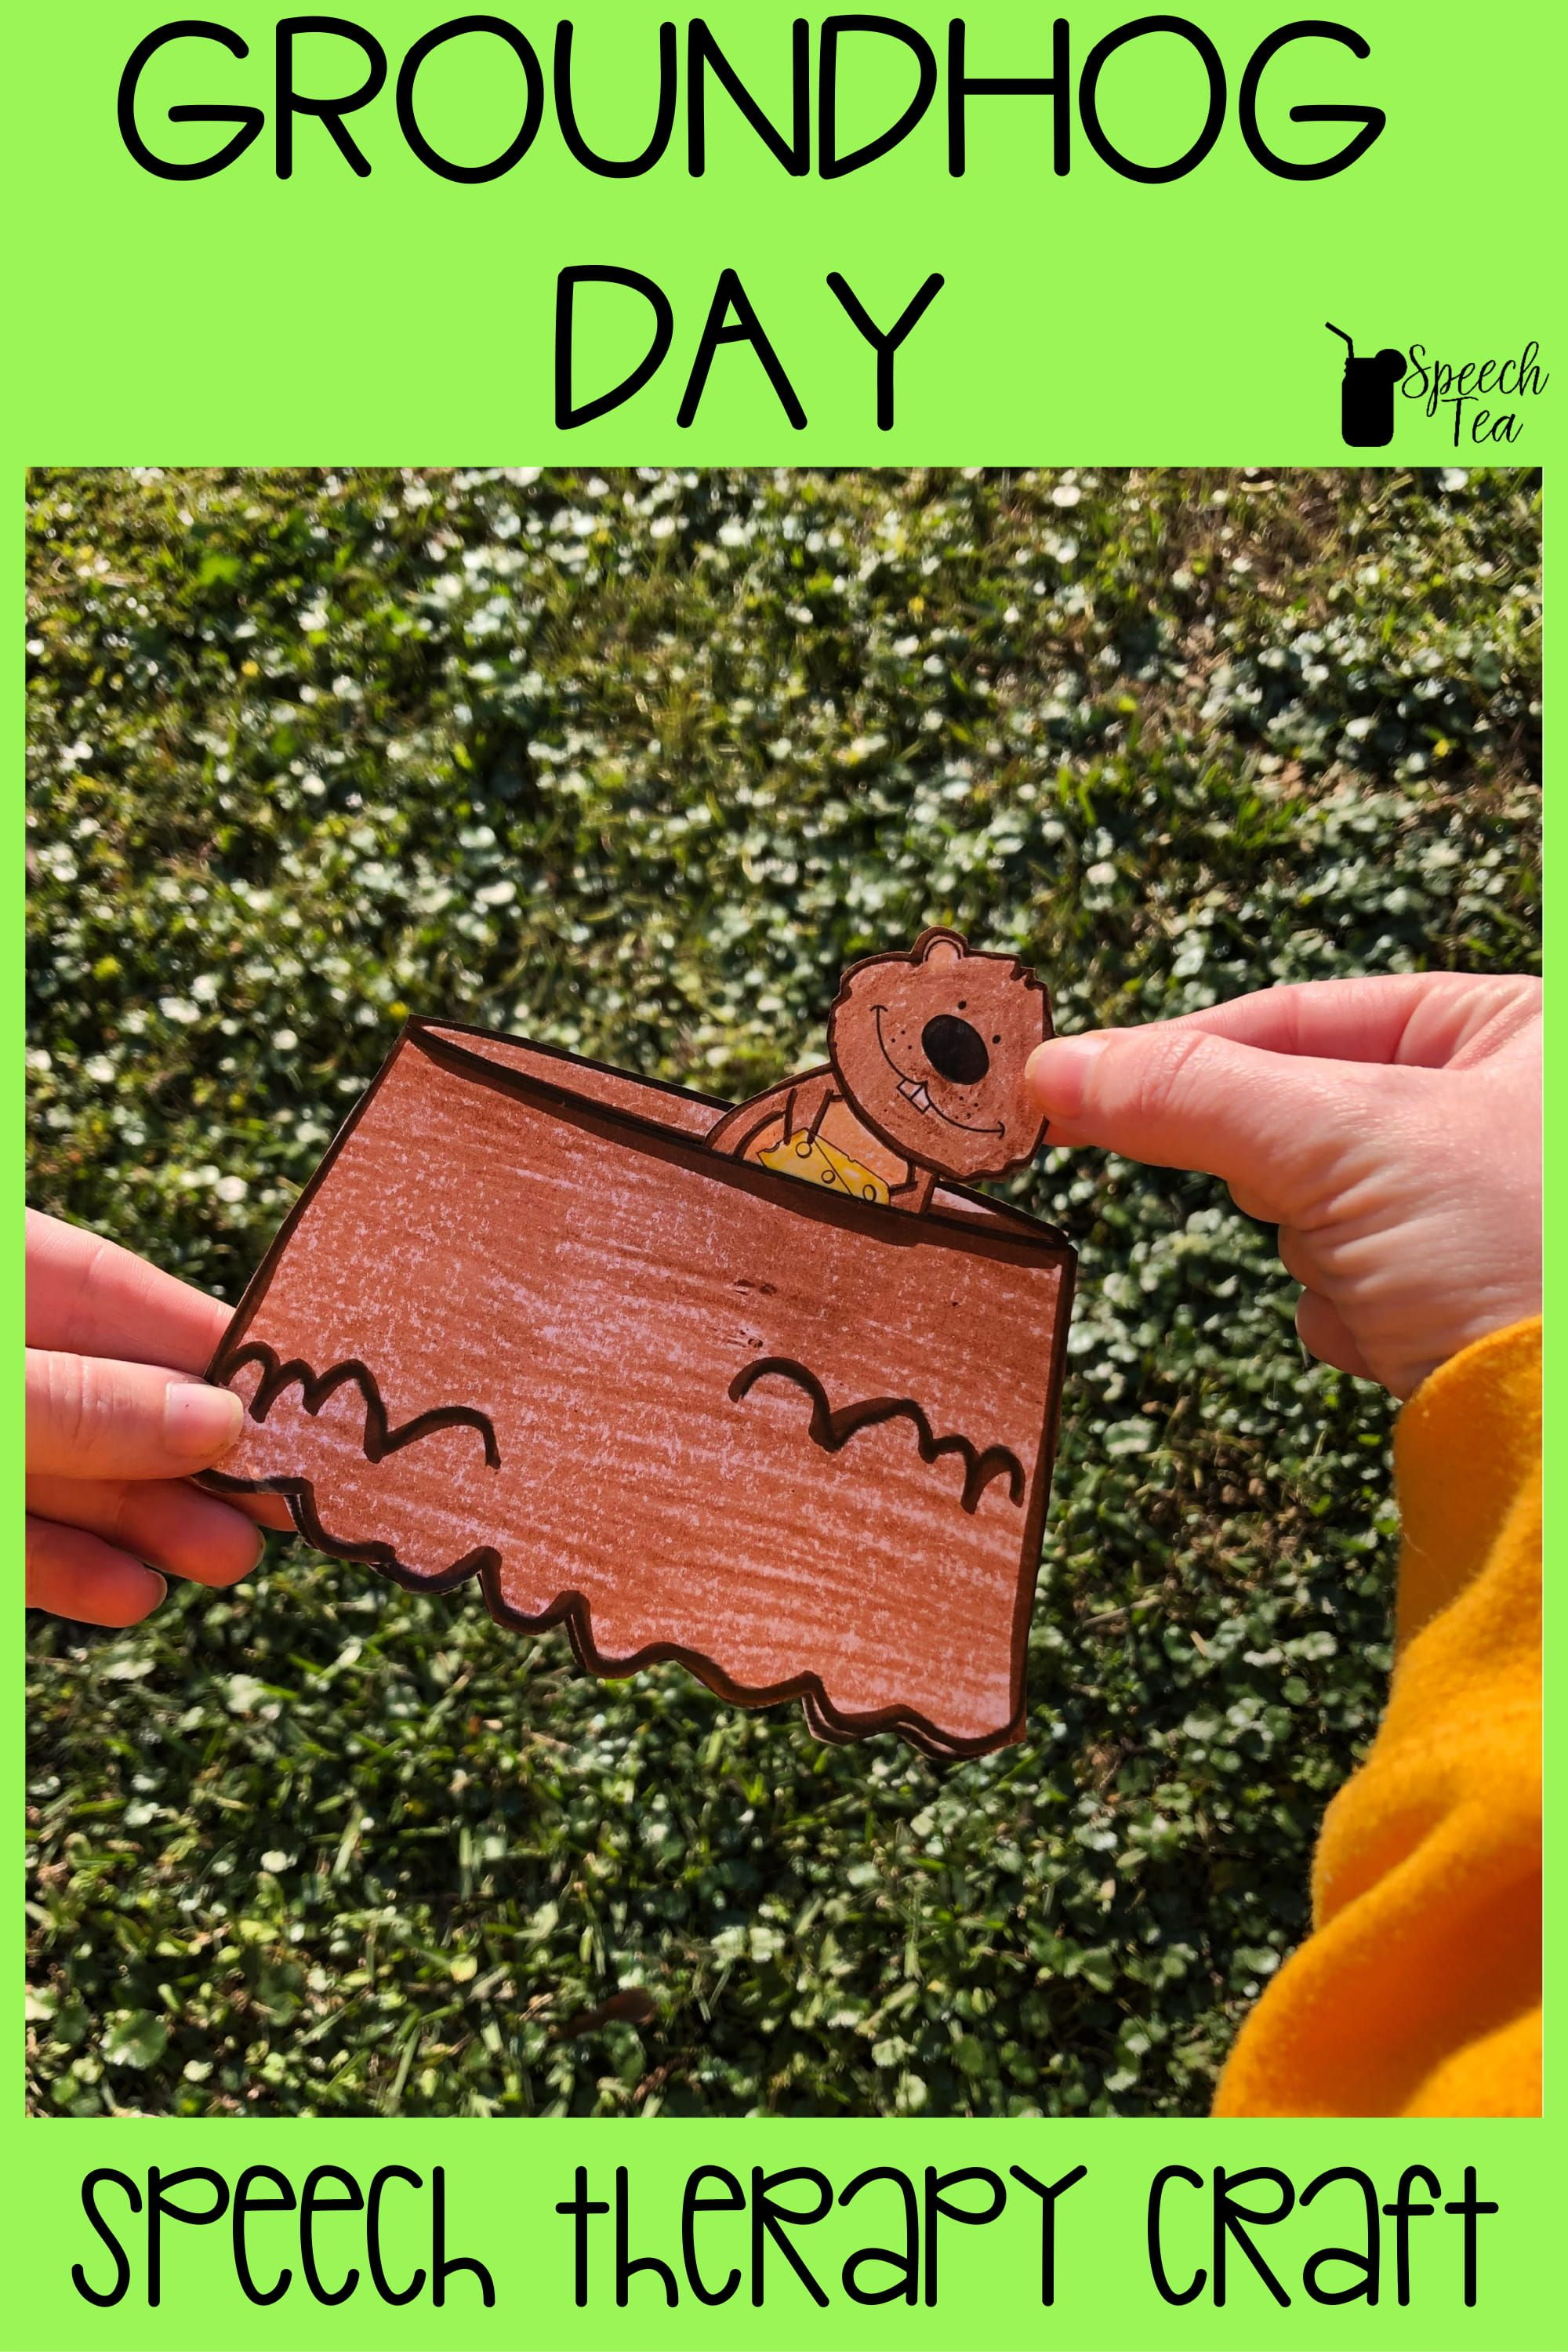 Groundhog Day Speech Therapy Craft For Your Students With Articulation Goals This